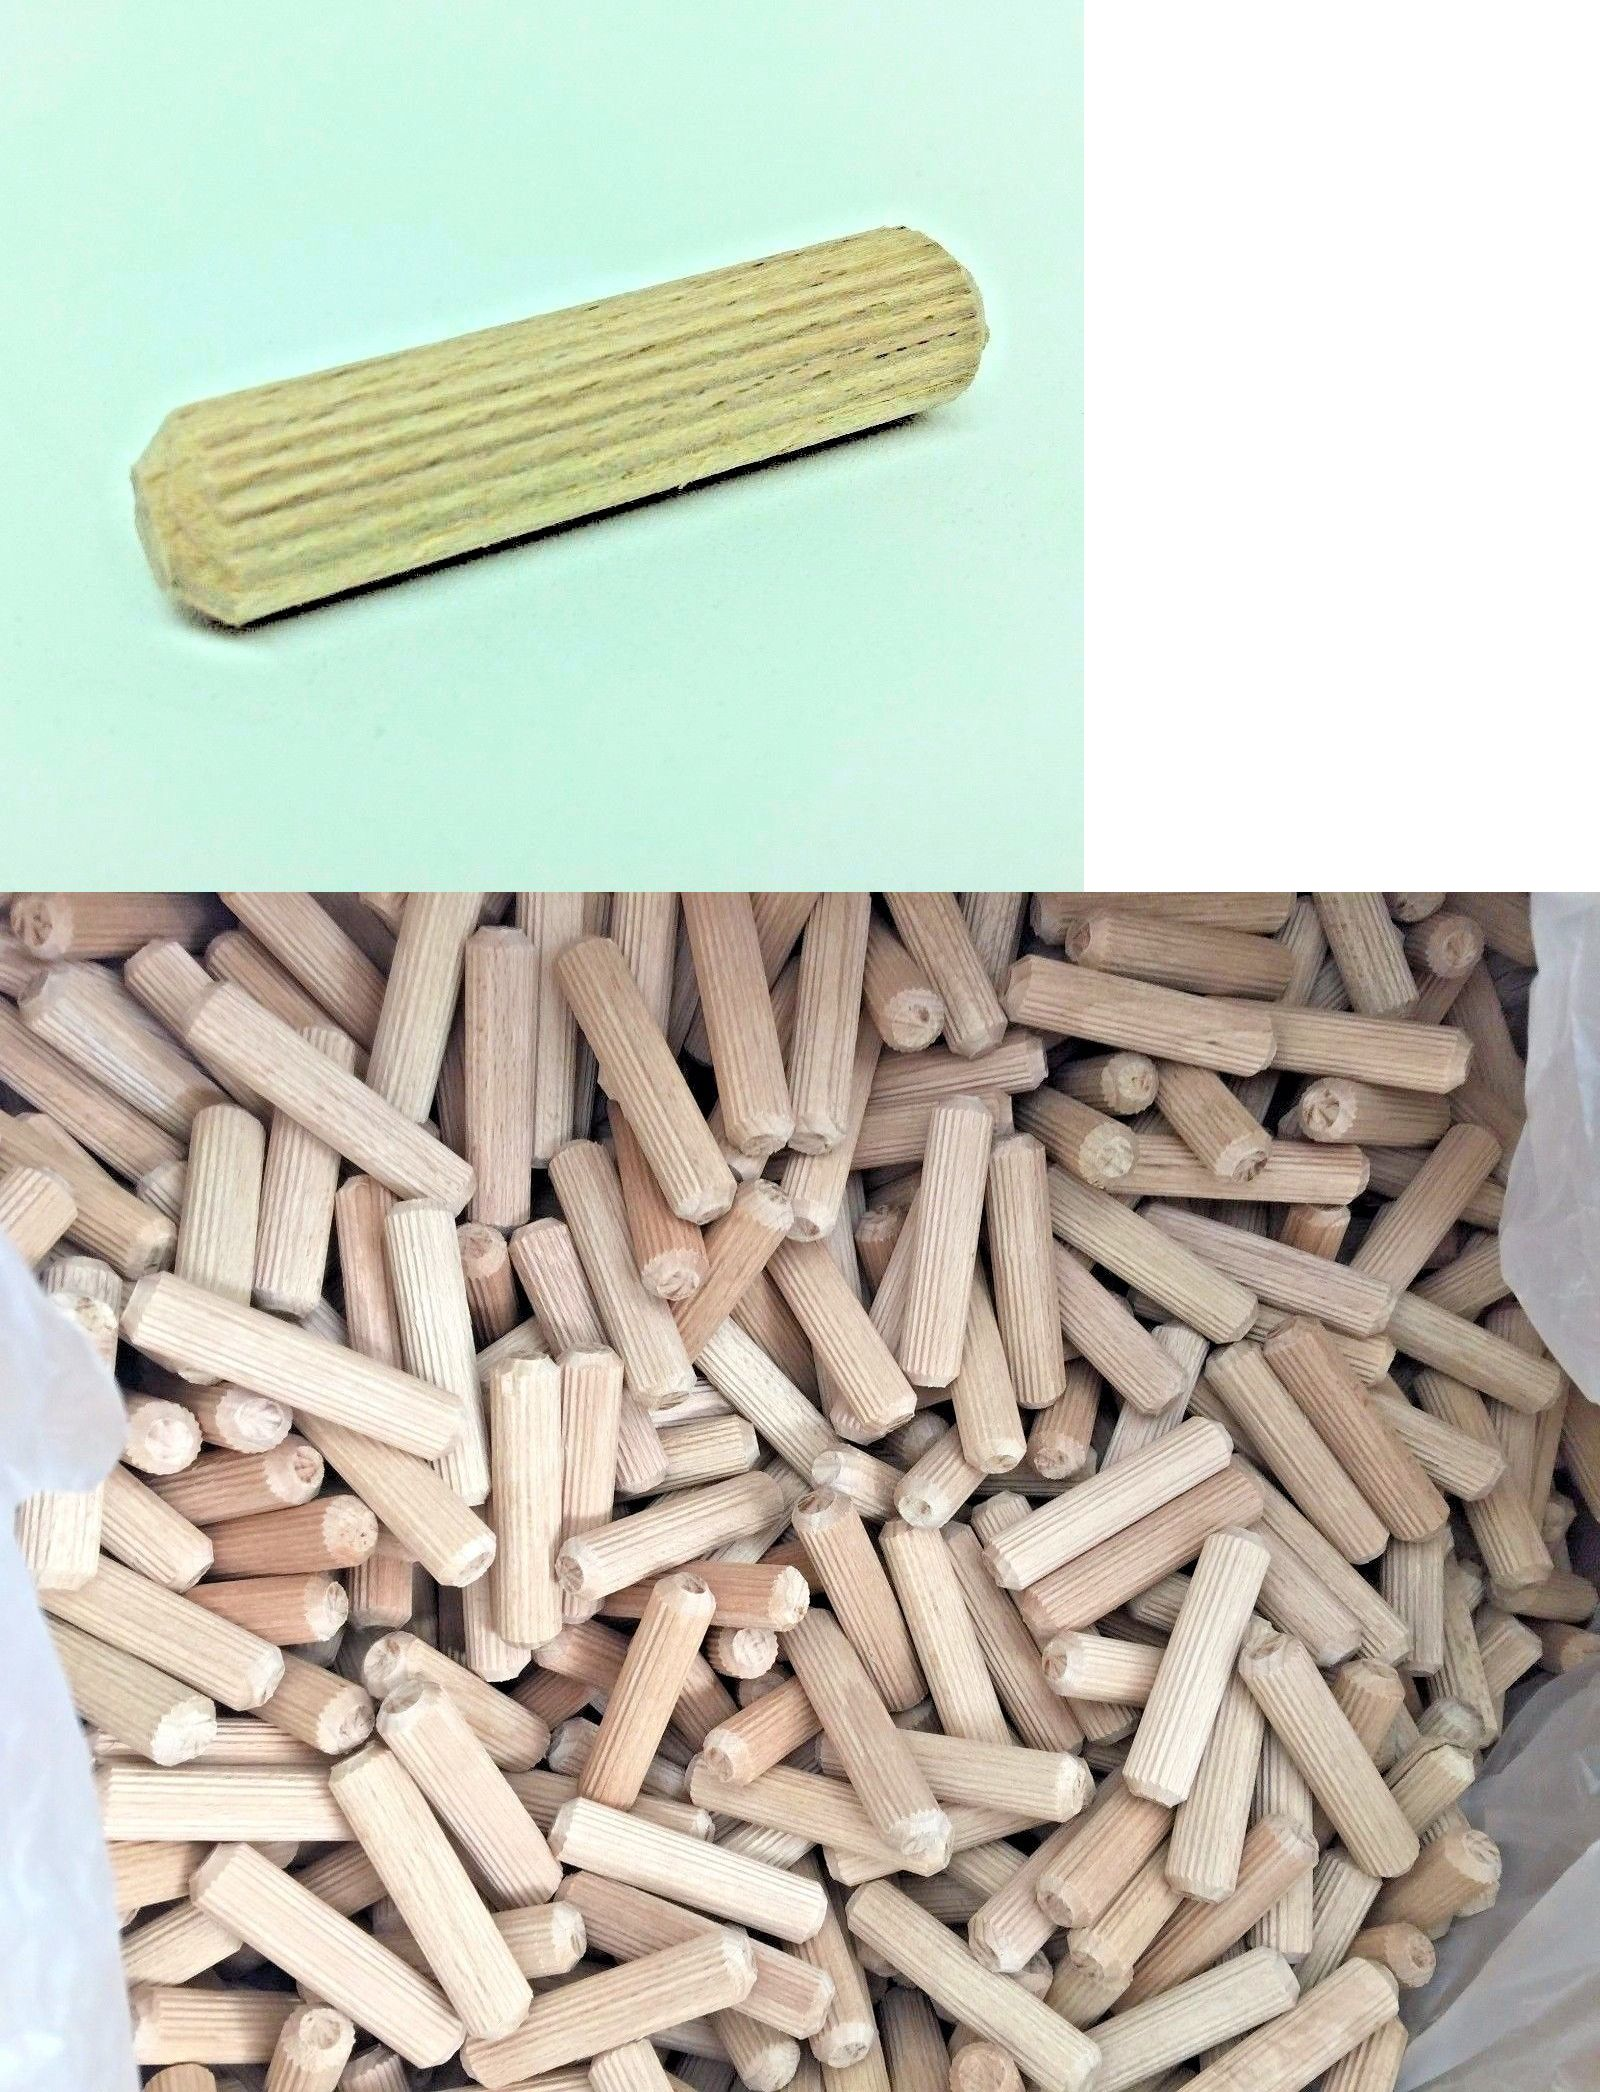 7 16 X 2 Grooved Fluted Wooden Dowel Pin 50 100 250 500 1000 Wood Nc Ebay Dowels Wooden Wood